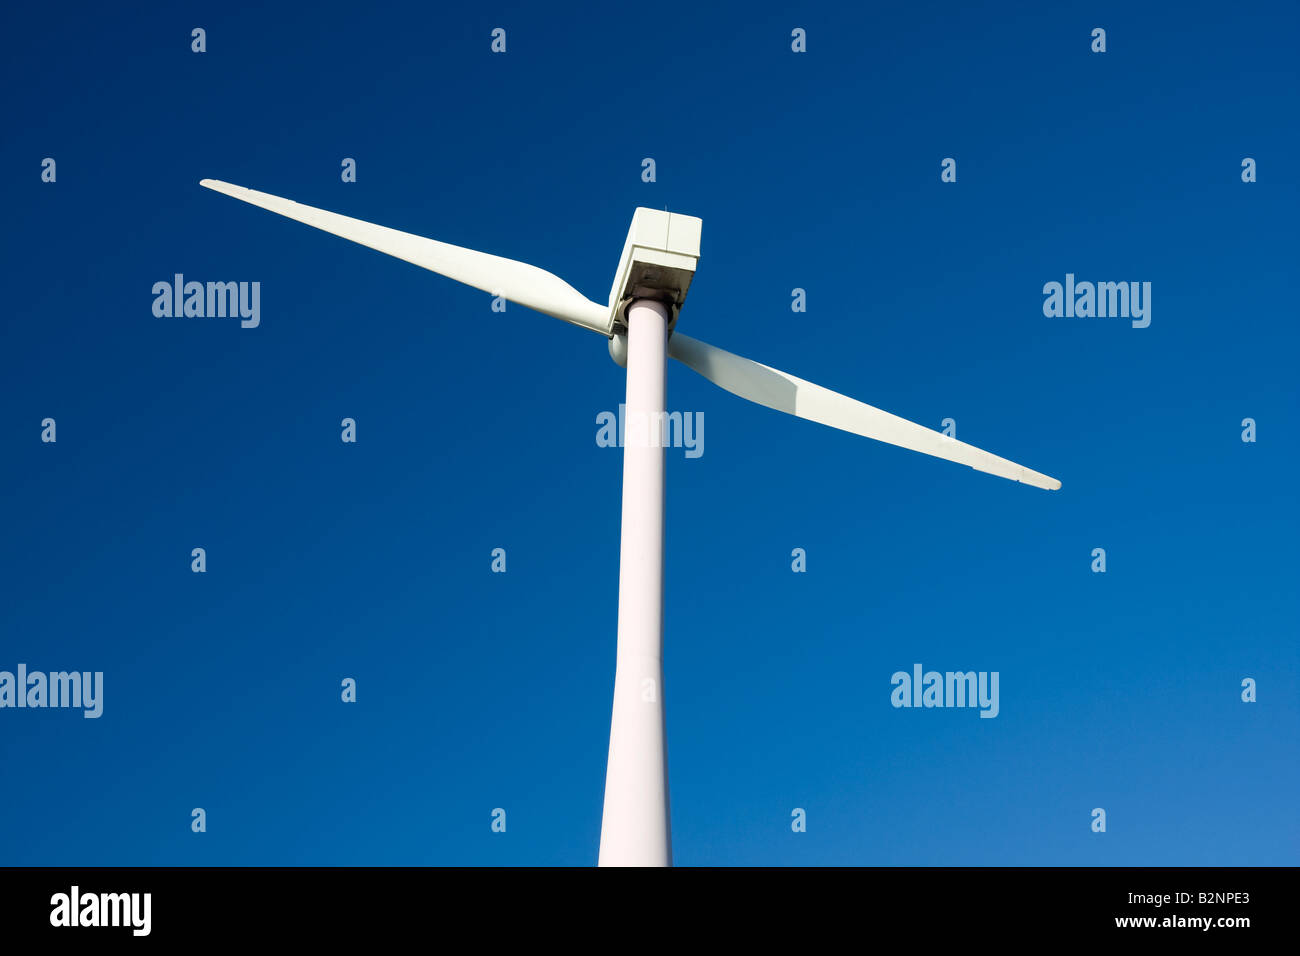 Two Bladed Windmill Against a Blue Sky - Stock Image